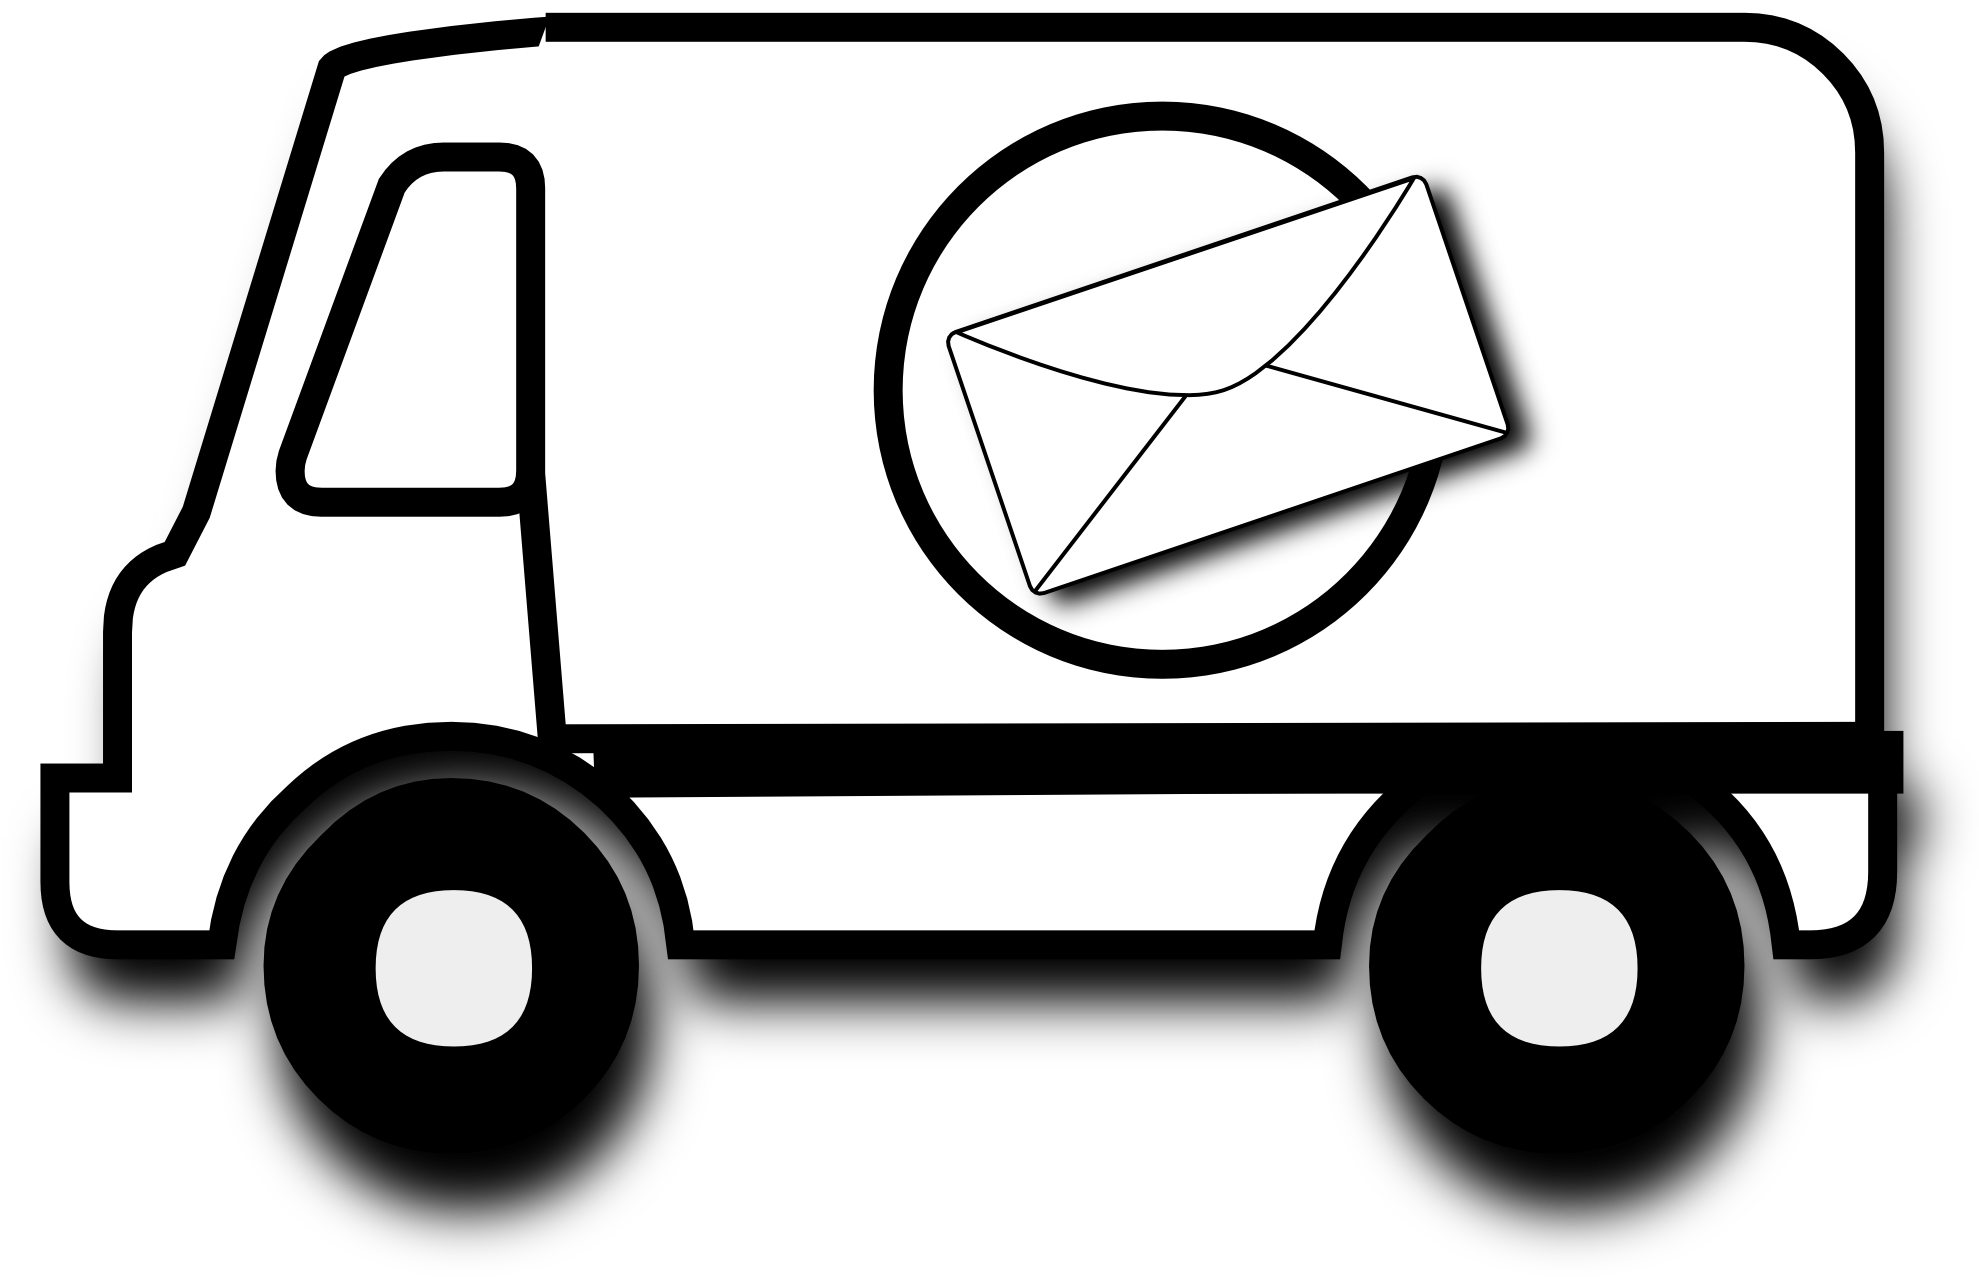 Line Drawing Van : Van black and white clipart suggest